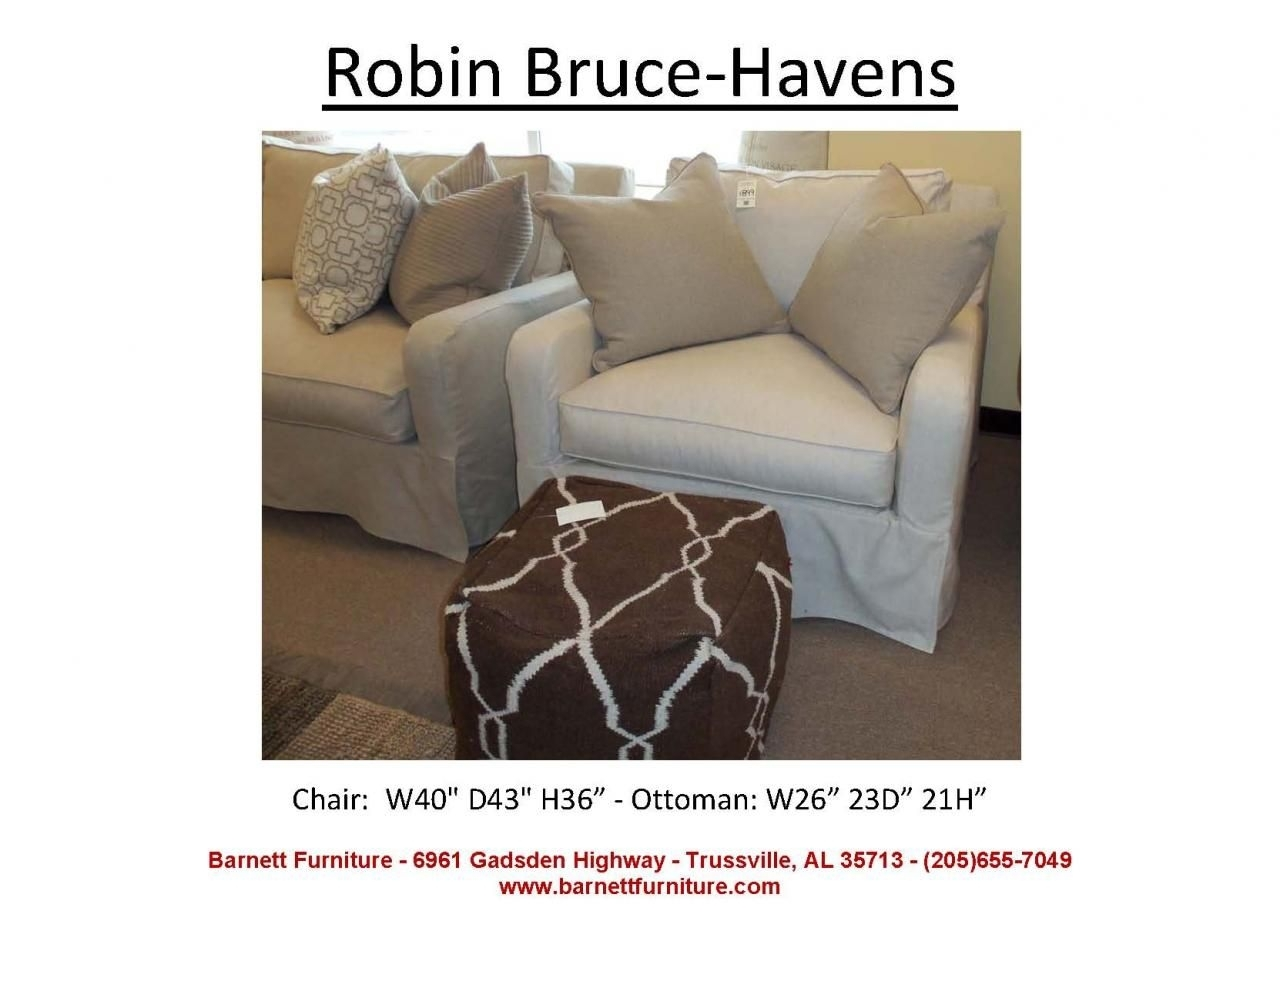 Robin Bruce Havens Slipcover Chair At Barnett Furniture In within Sectional Sofas at Birmingham Al (Image 10 of 15)